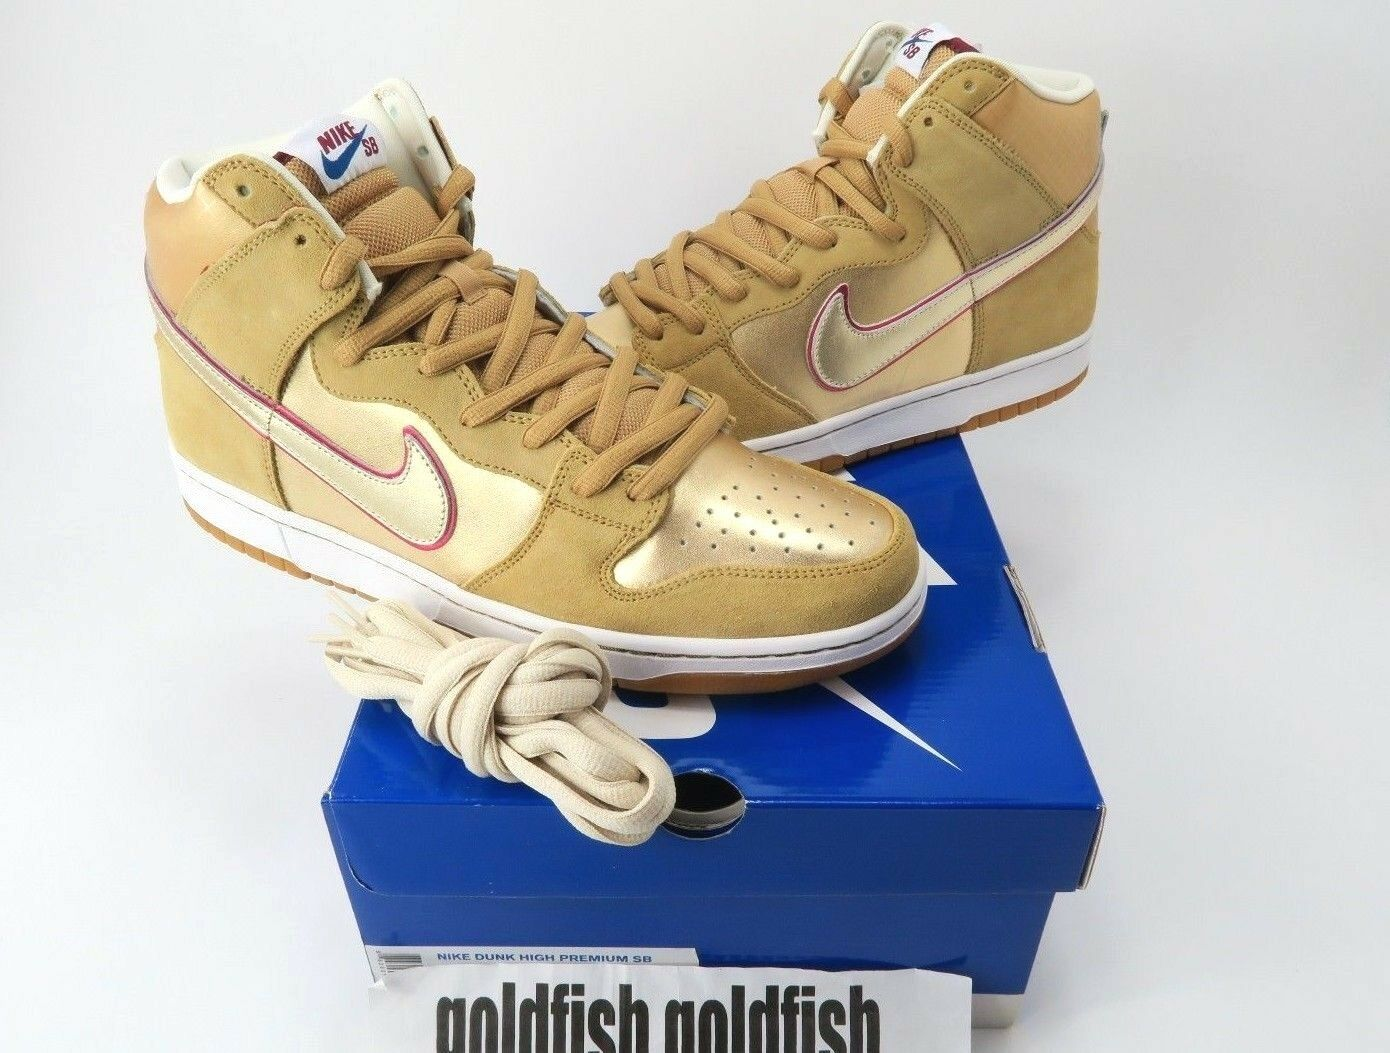 ds forte nike dunk forte ds prime sb koston 313171 702 2010 or 0bb36f